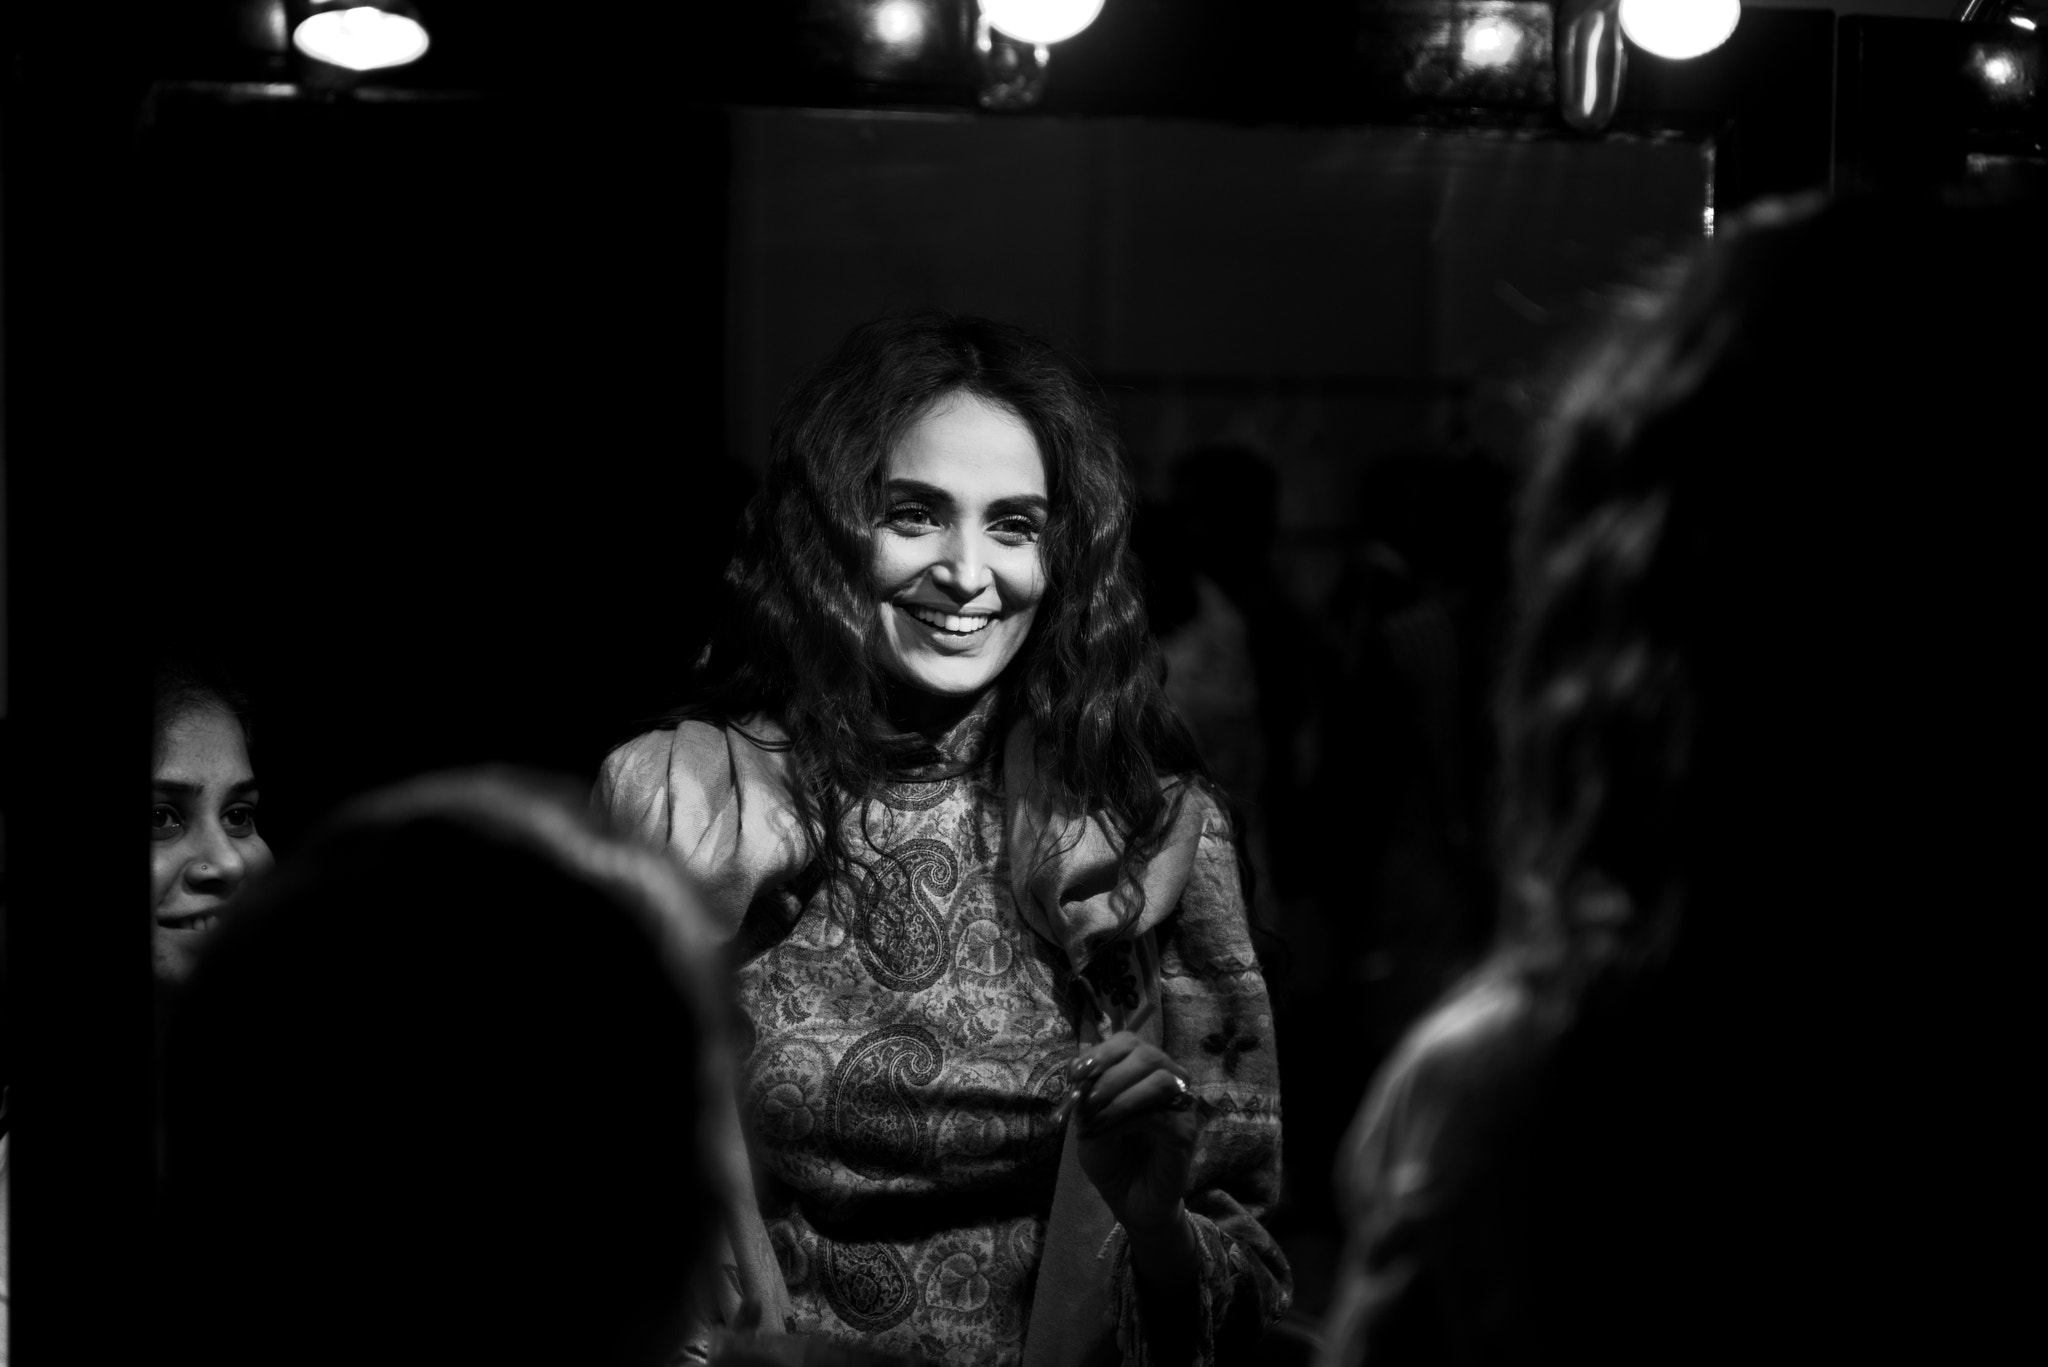 Photograph Mehreen at FPW by Omaer Sheikh on 500px